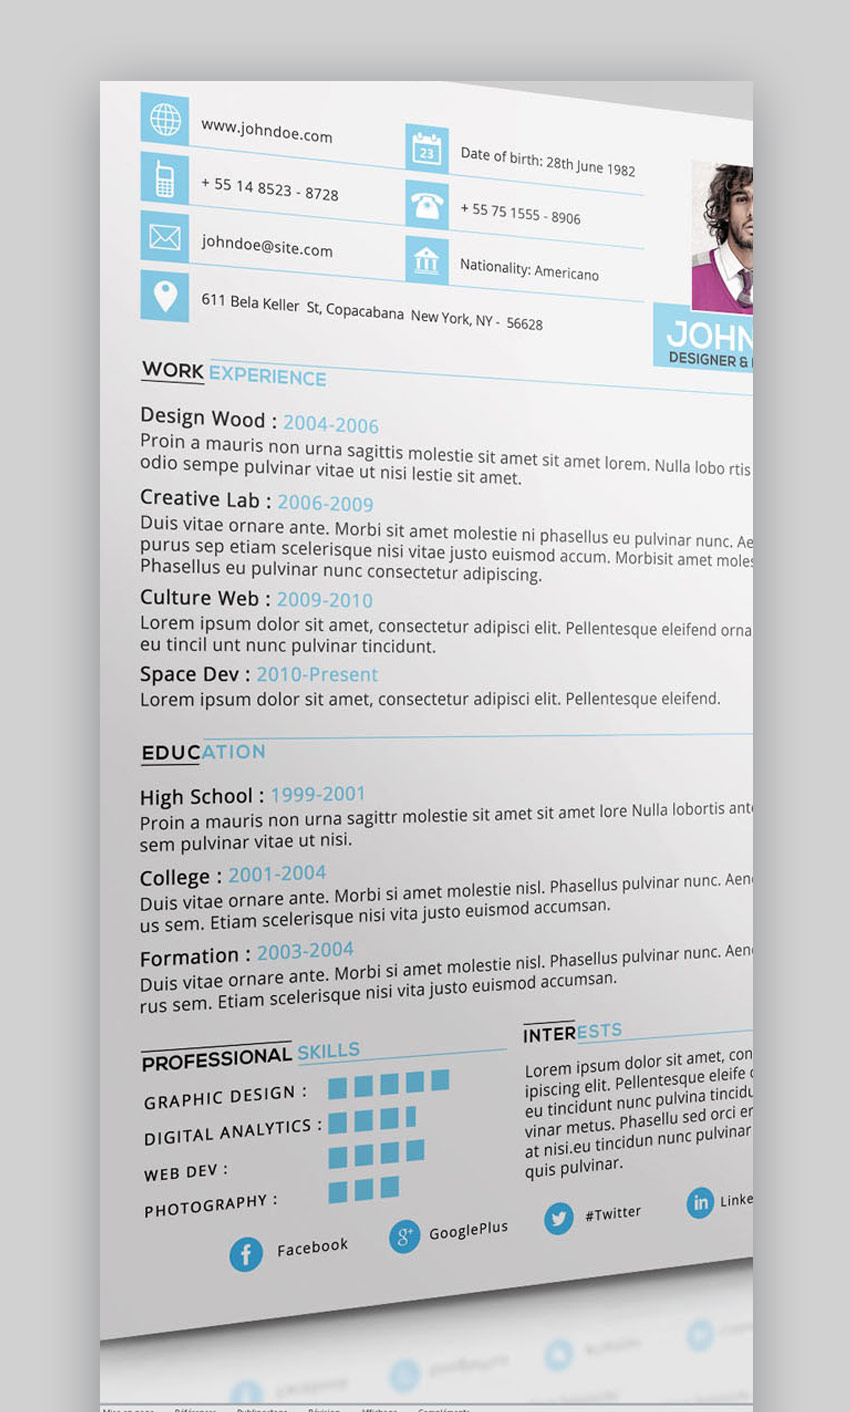 20 Best Job Resume Templates With Simple Designs (2018)